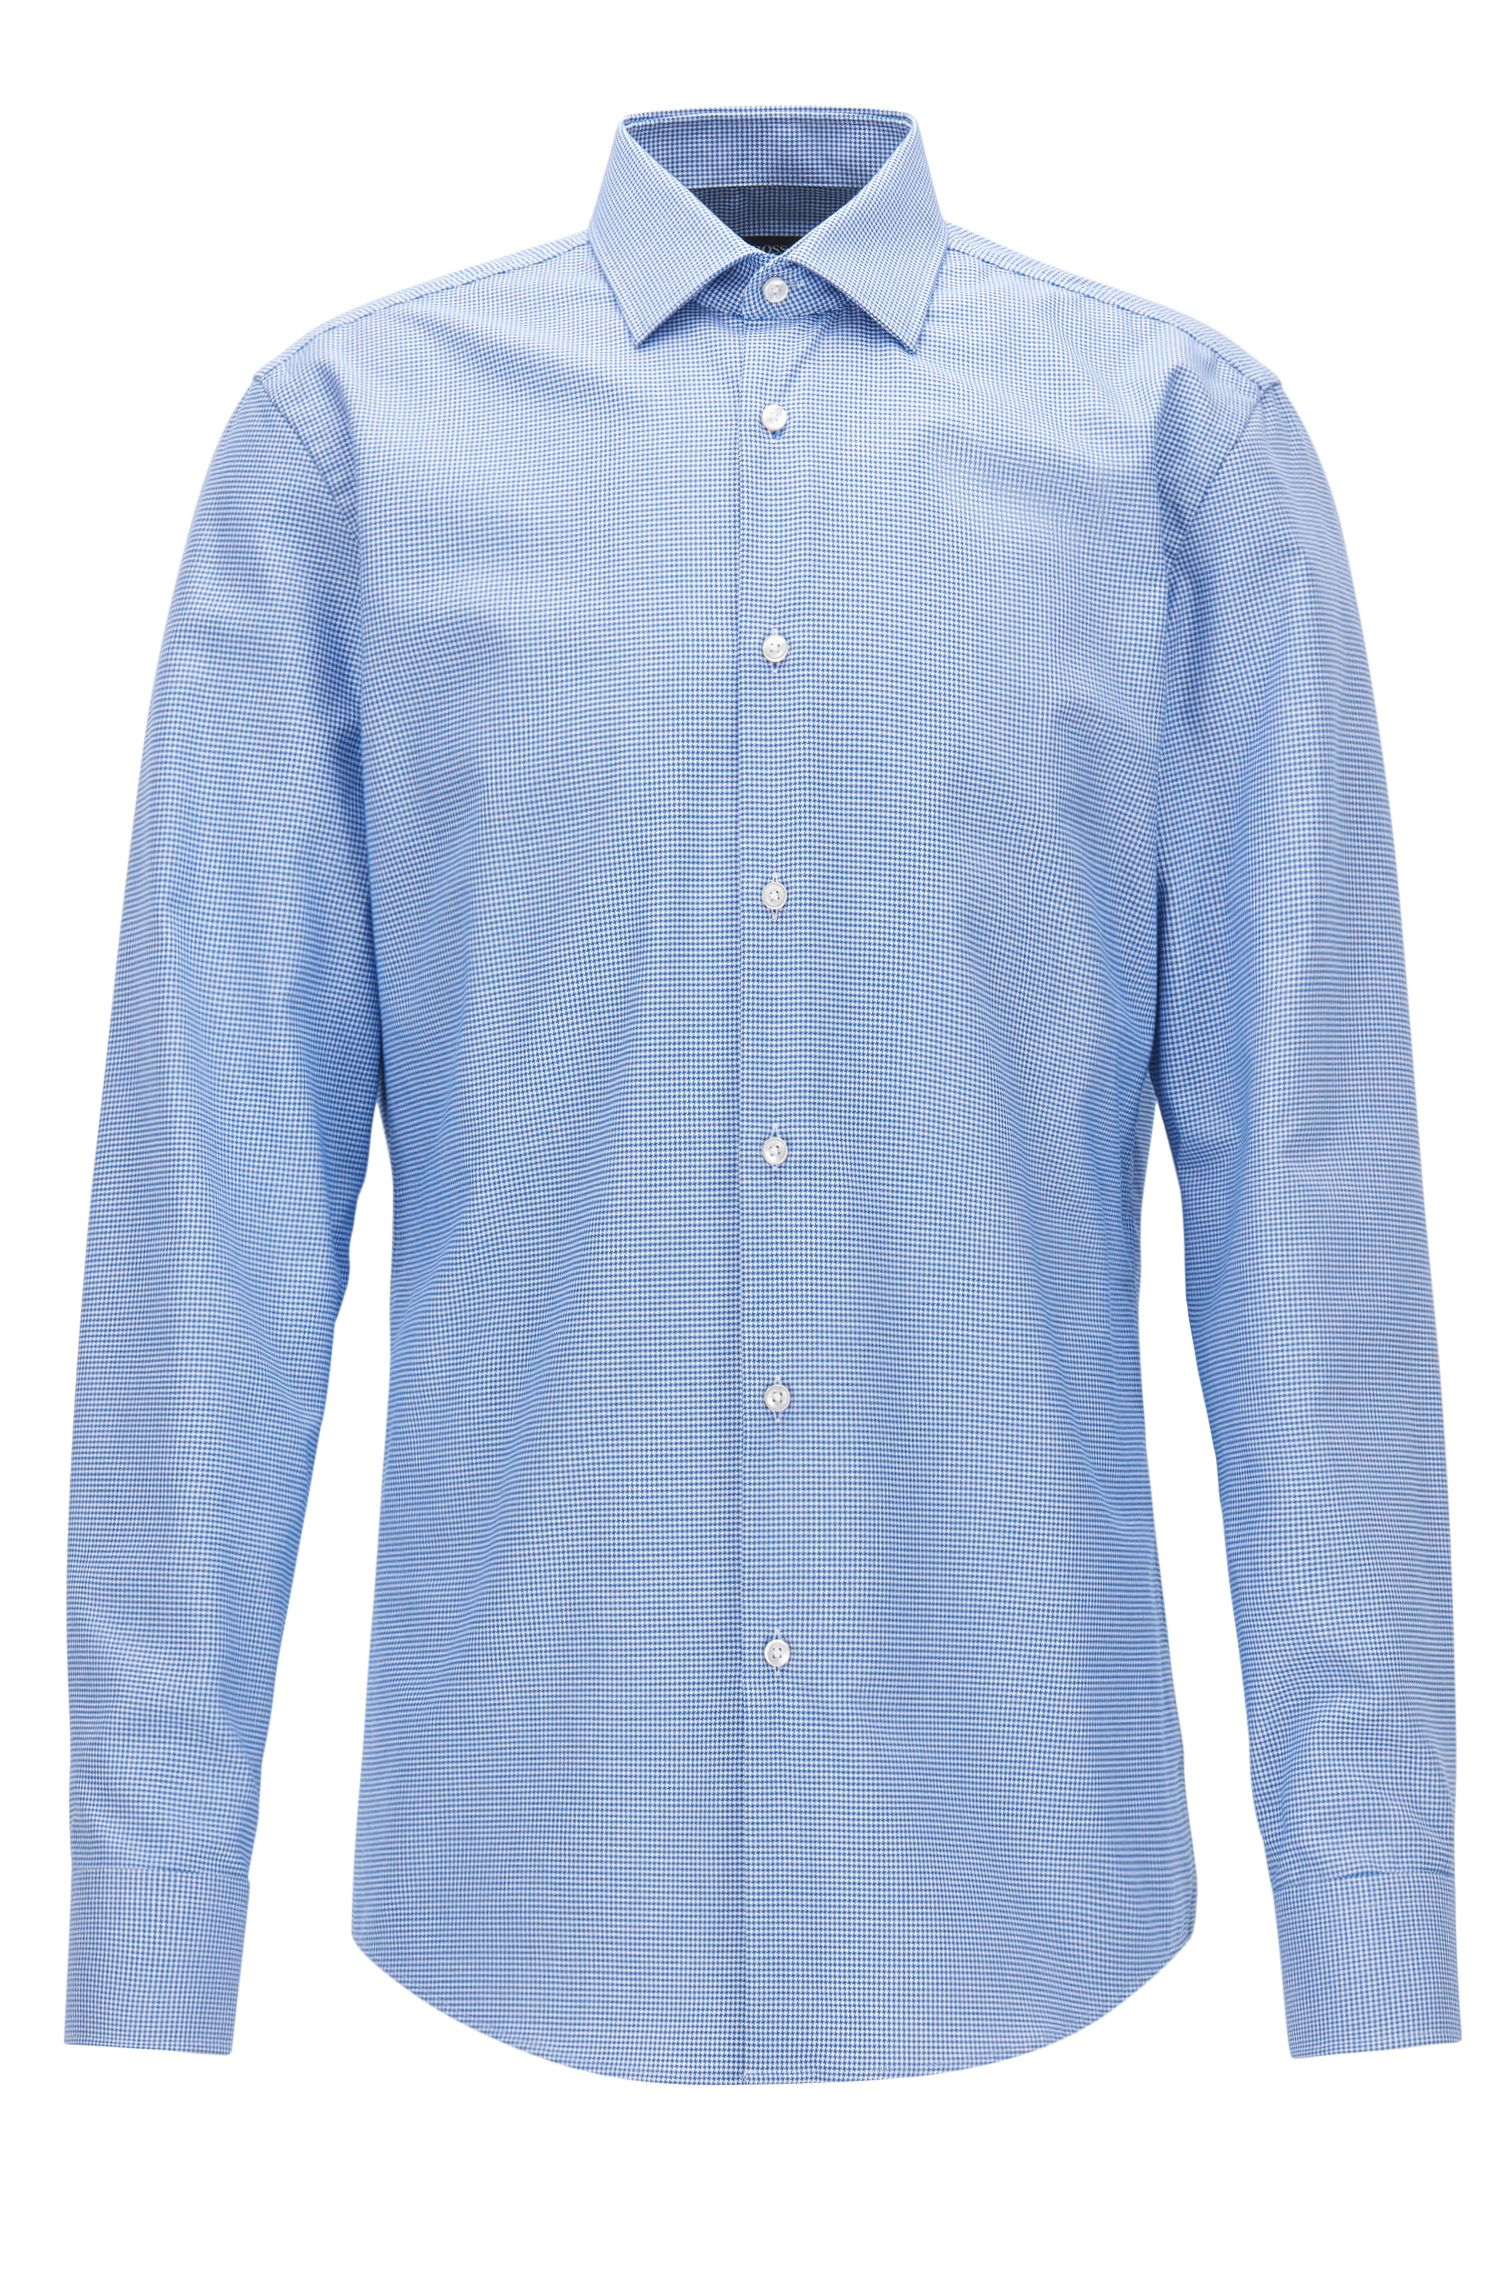 Puppytooth Cotton Dress Shirt, Slim Fit | Jenno